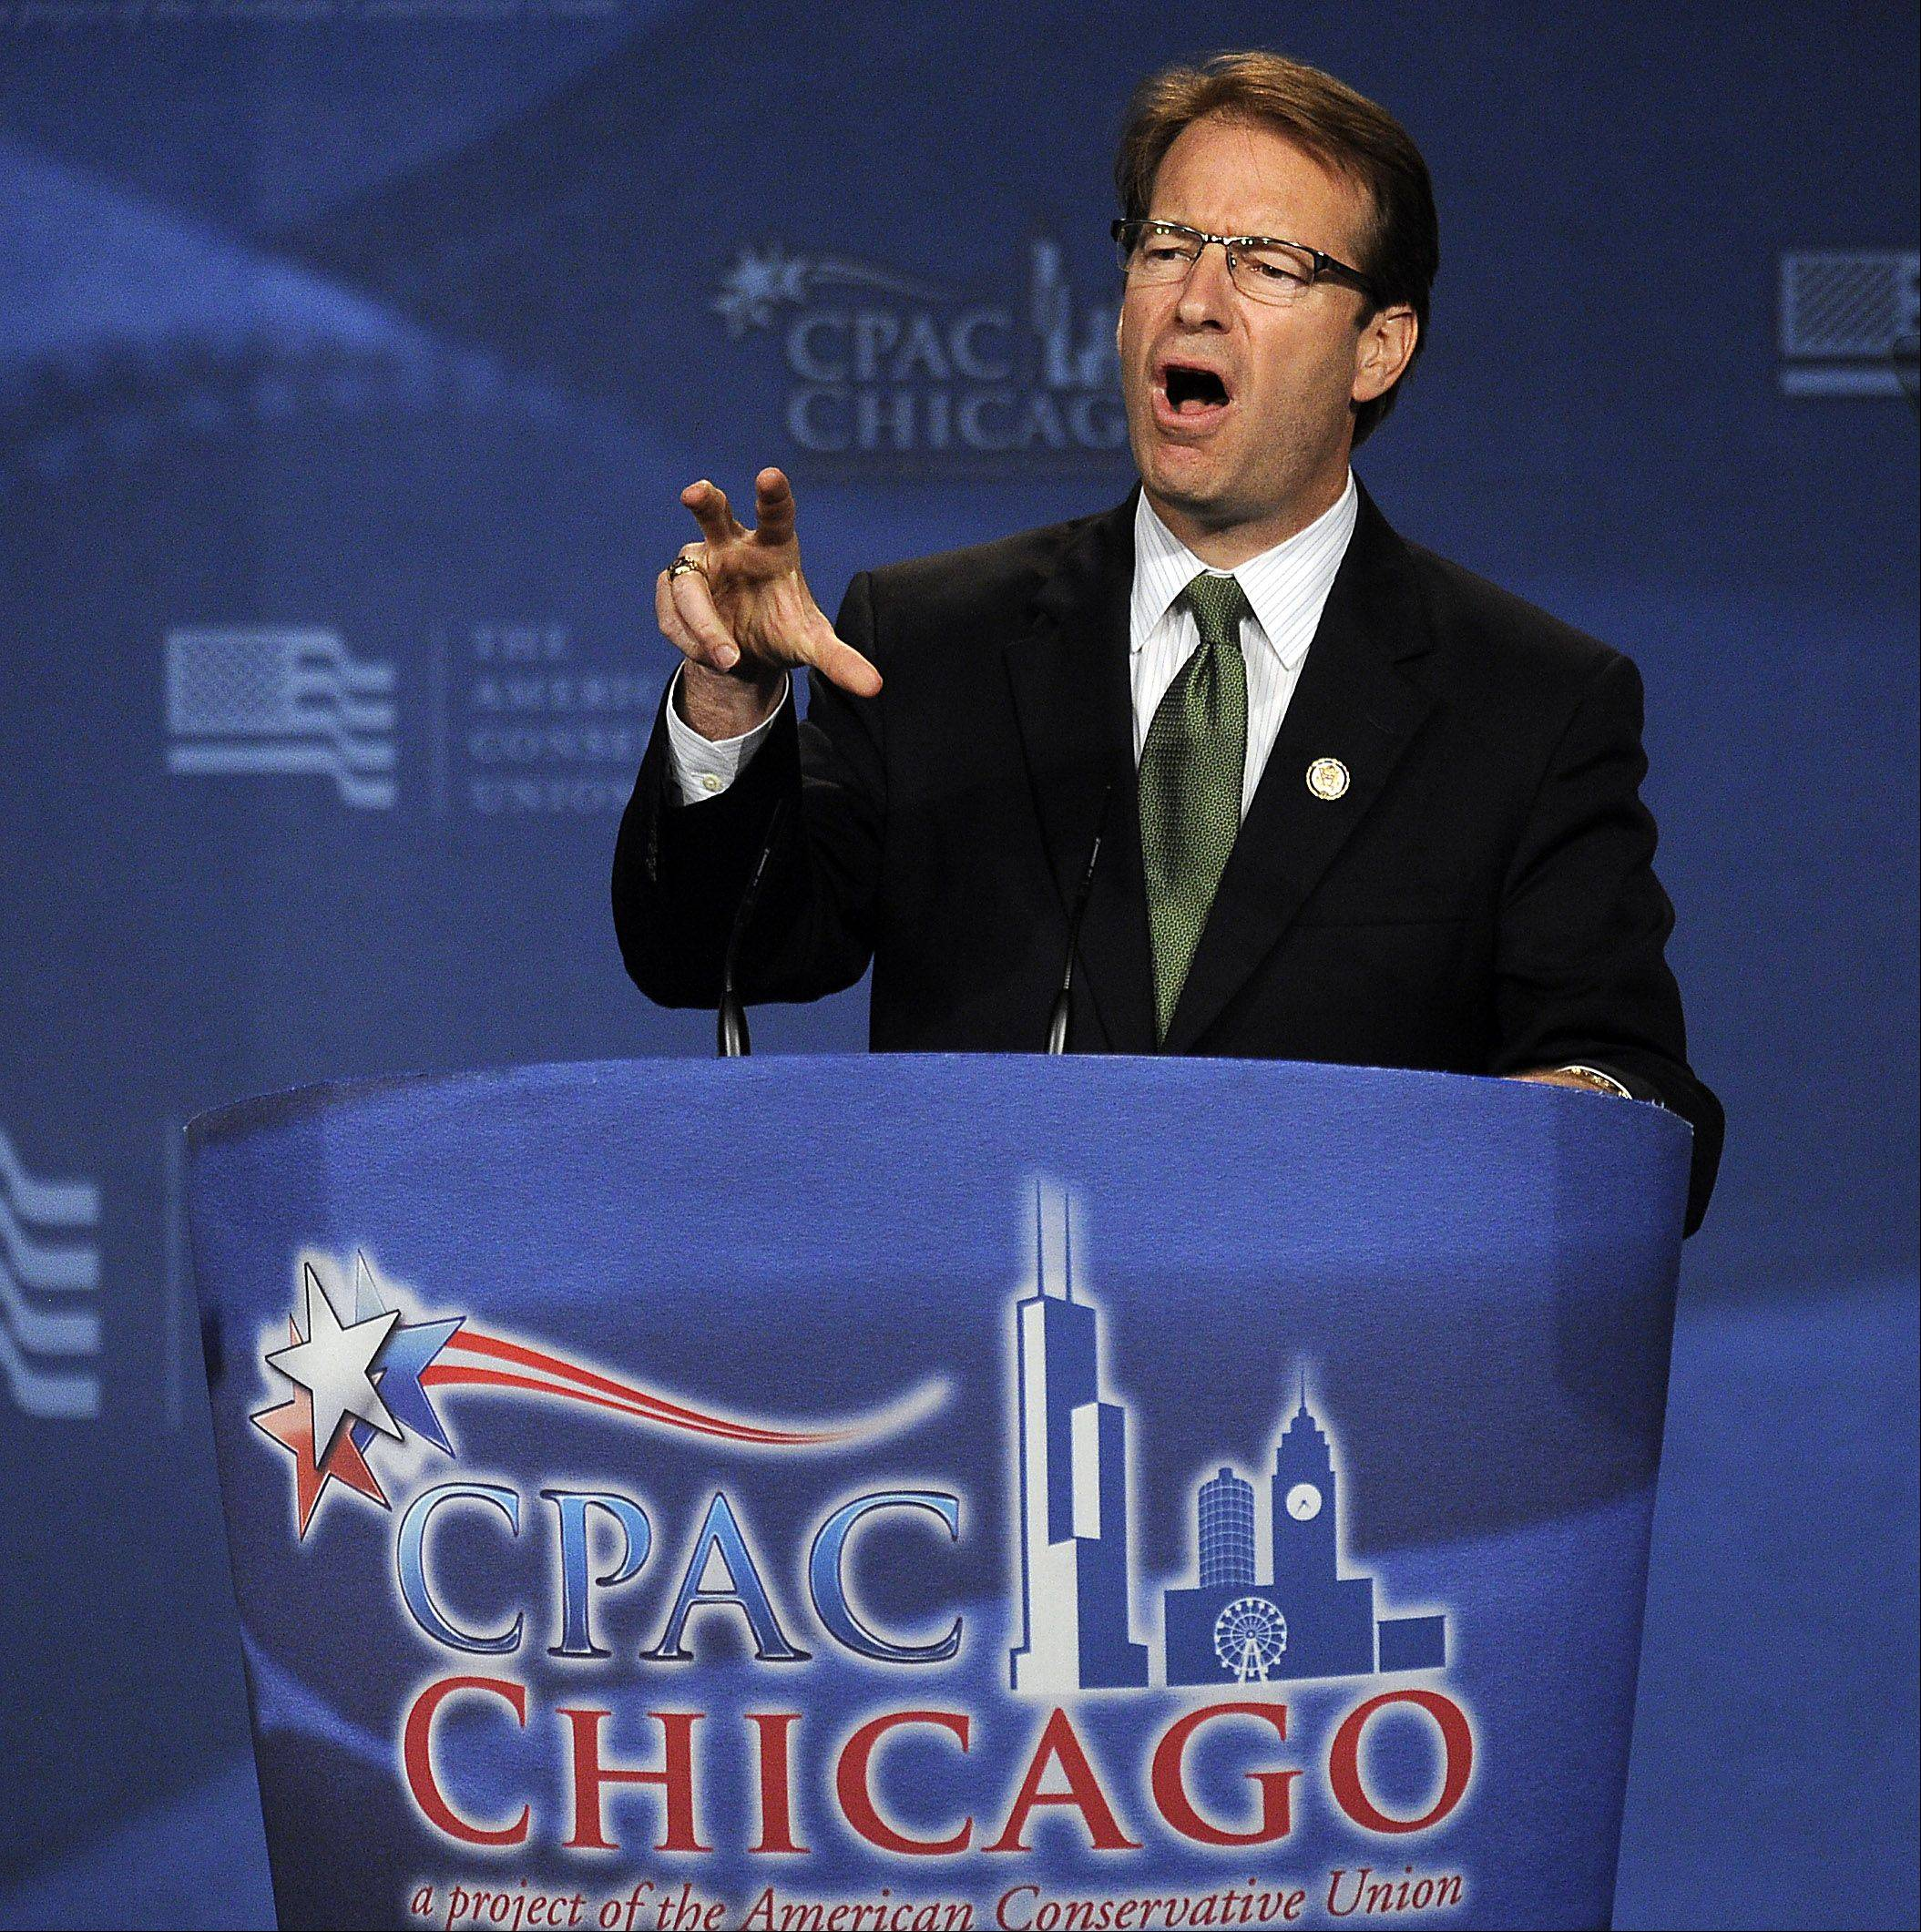 U.S. Representative Peter Roskam speaks at the CPAC Chicago's Conservative Political Action Conference on Friday at the Stephens Convention Center in Rosemont.